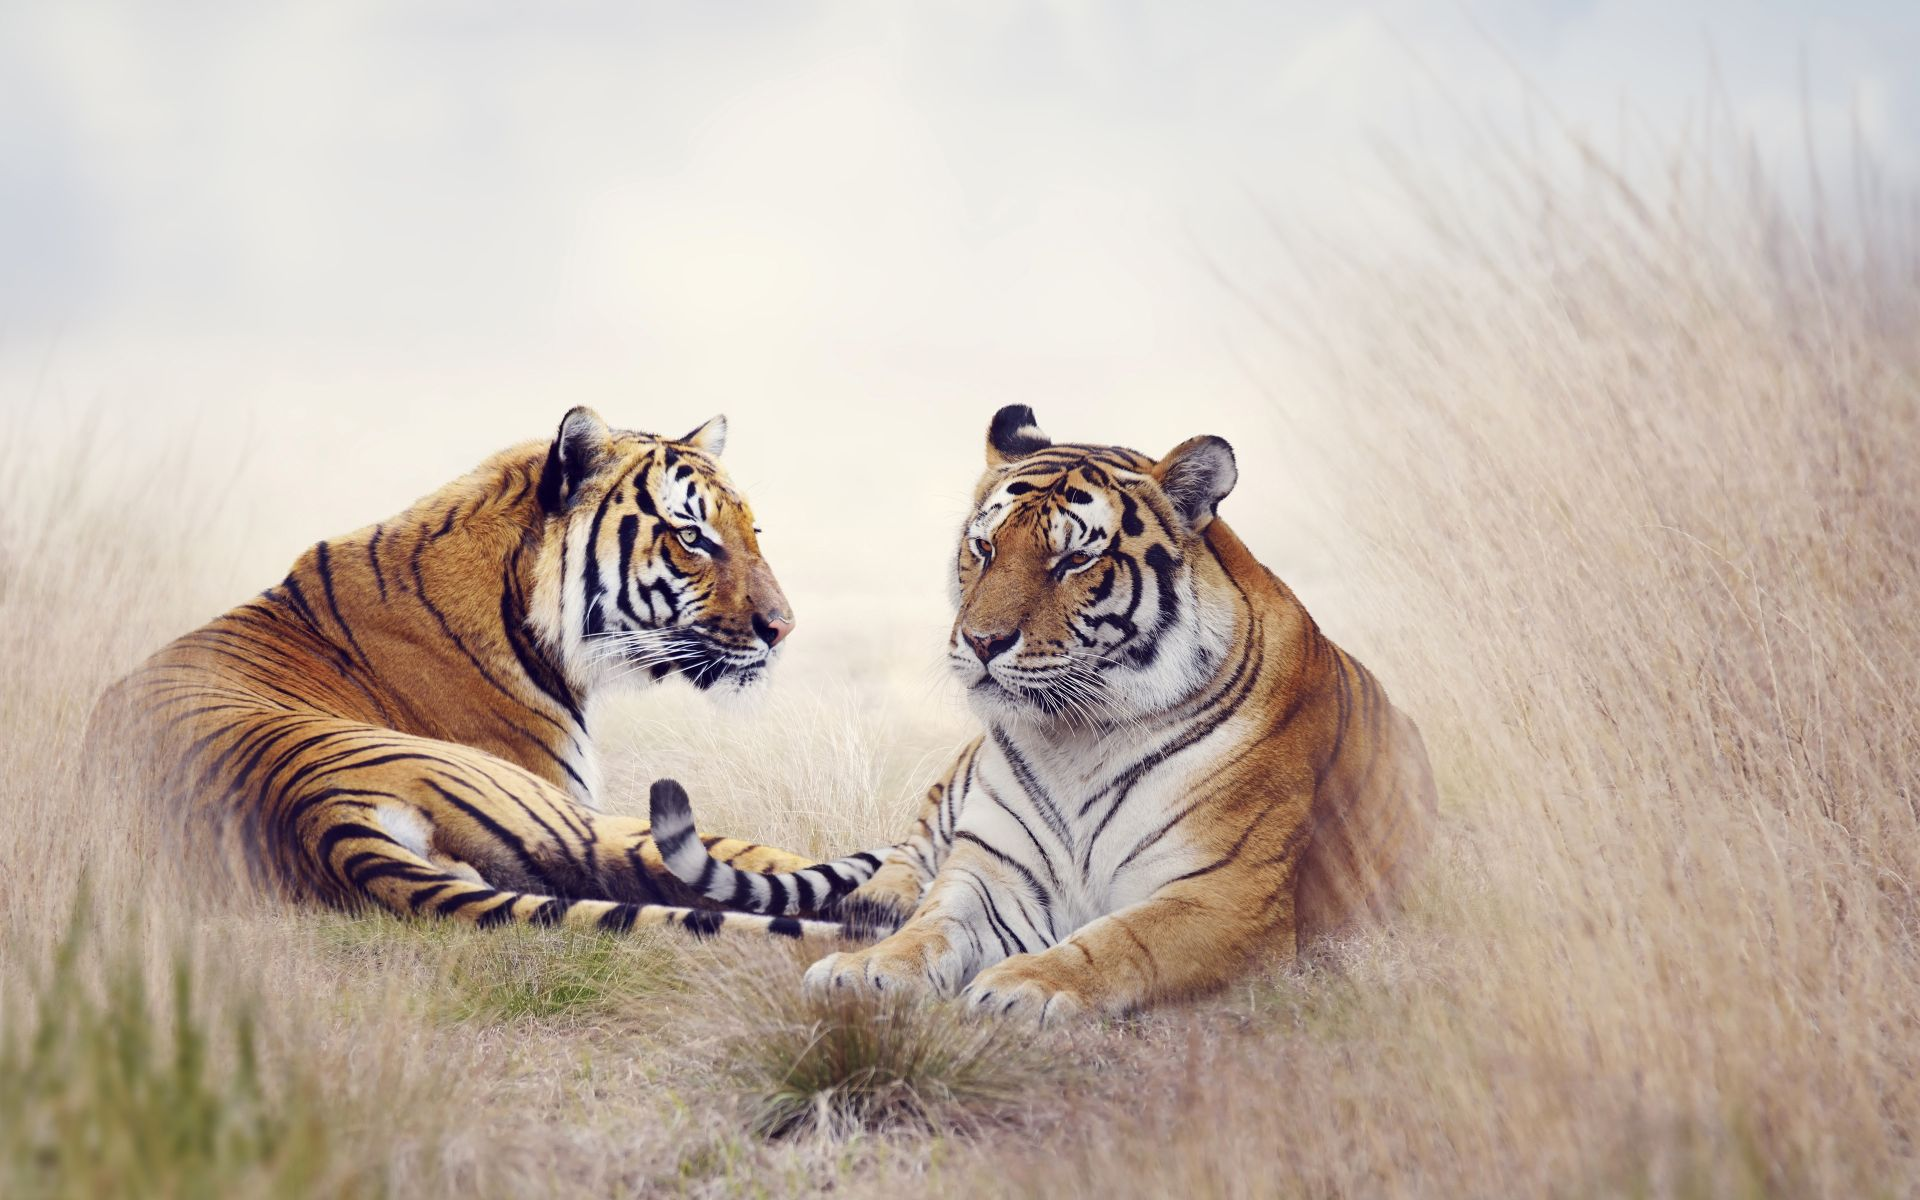 Two Tigers, Pic